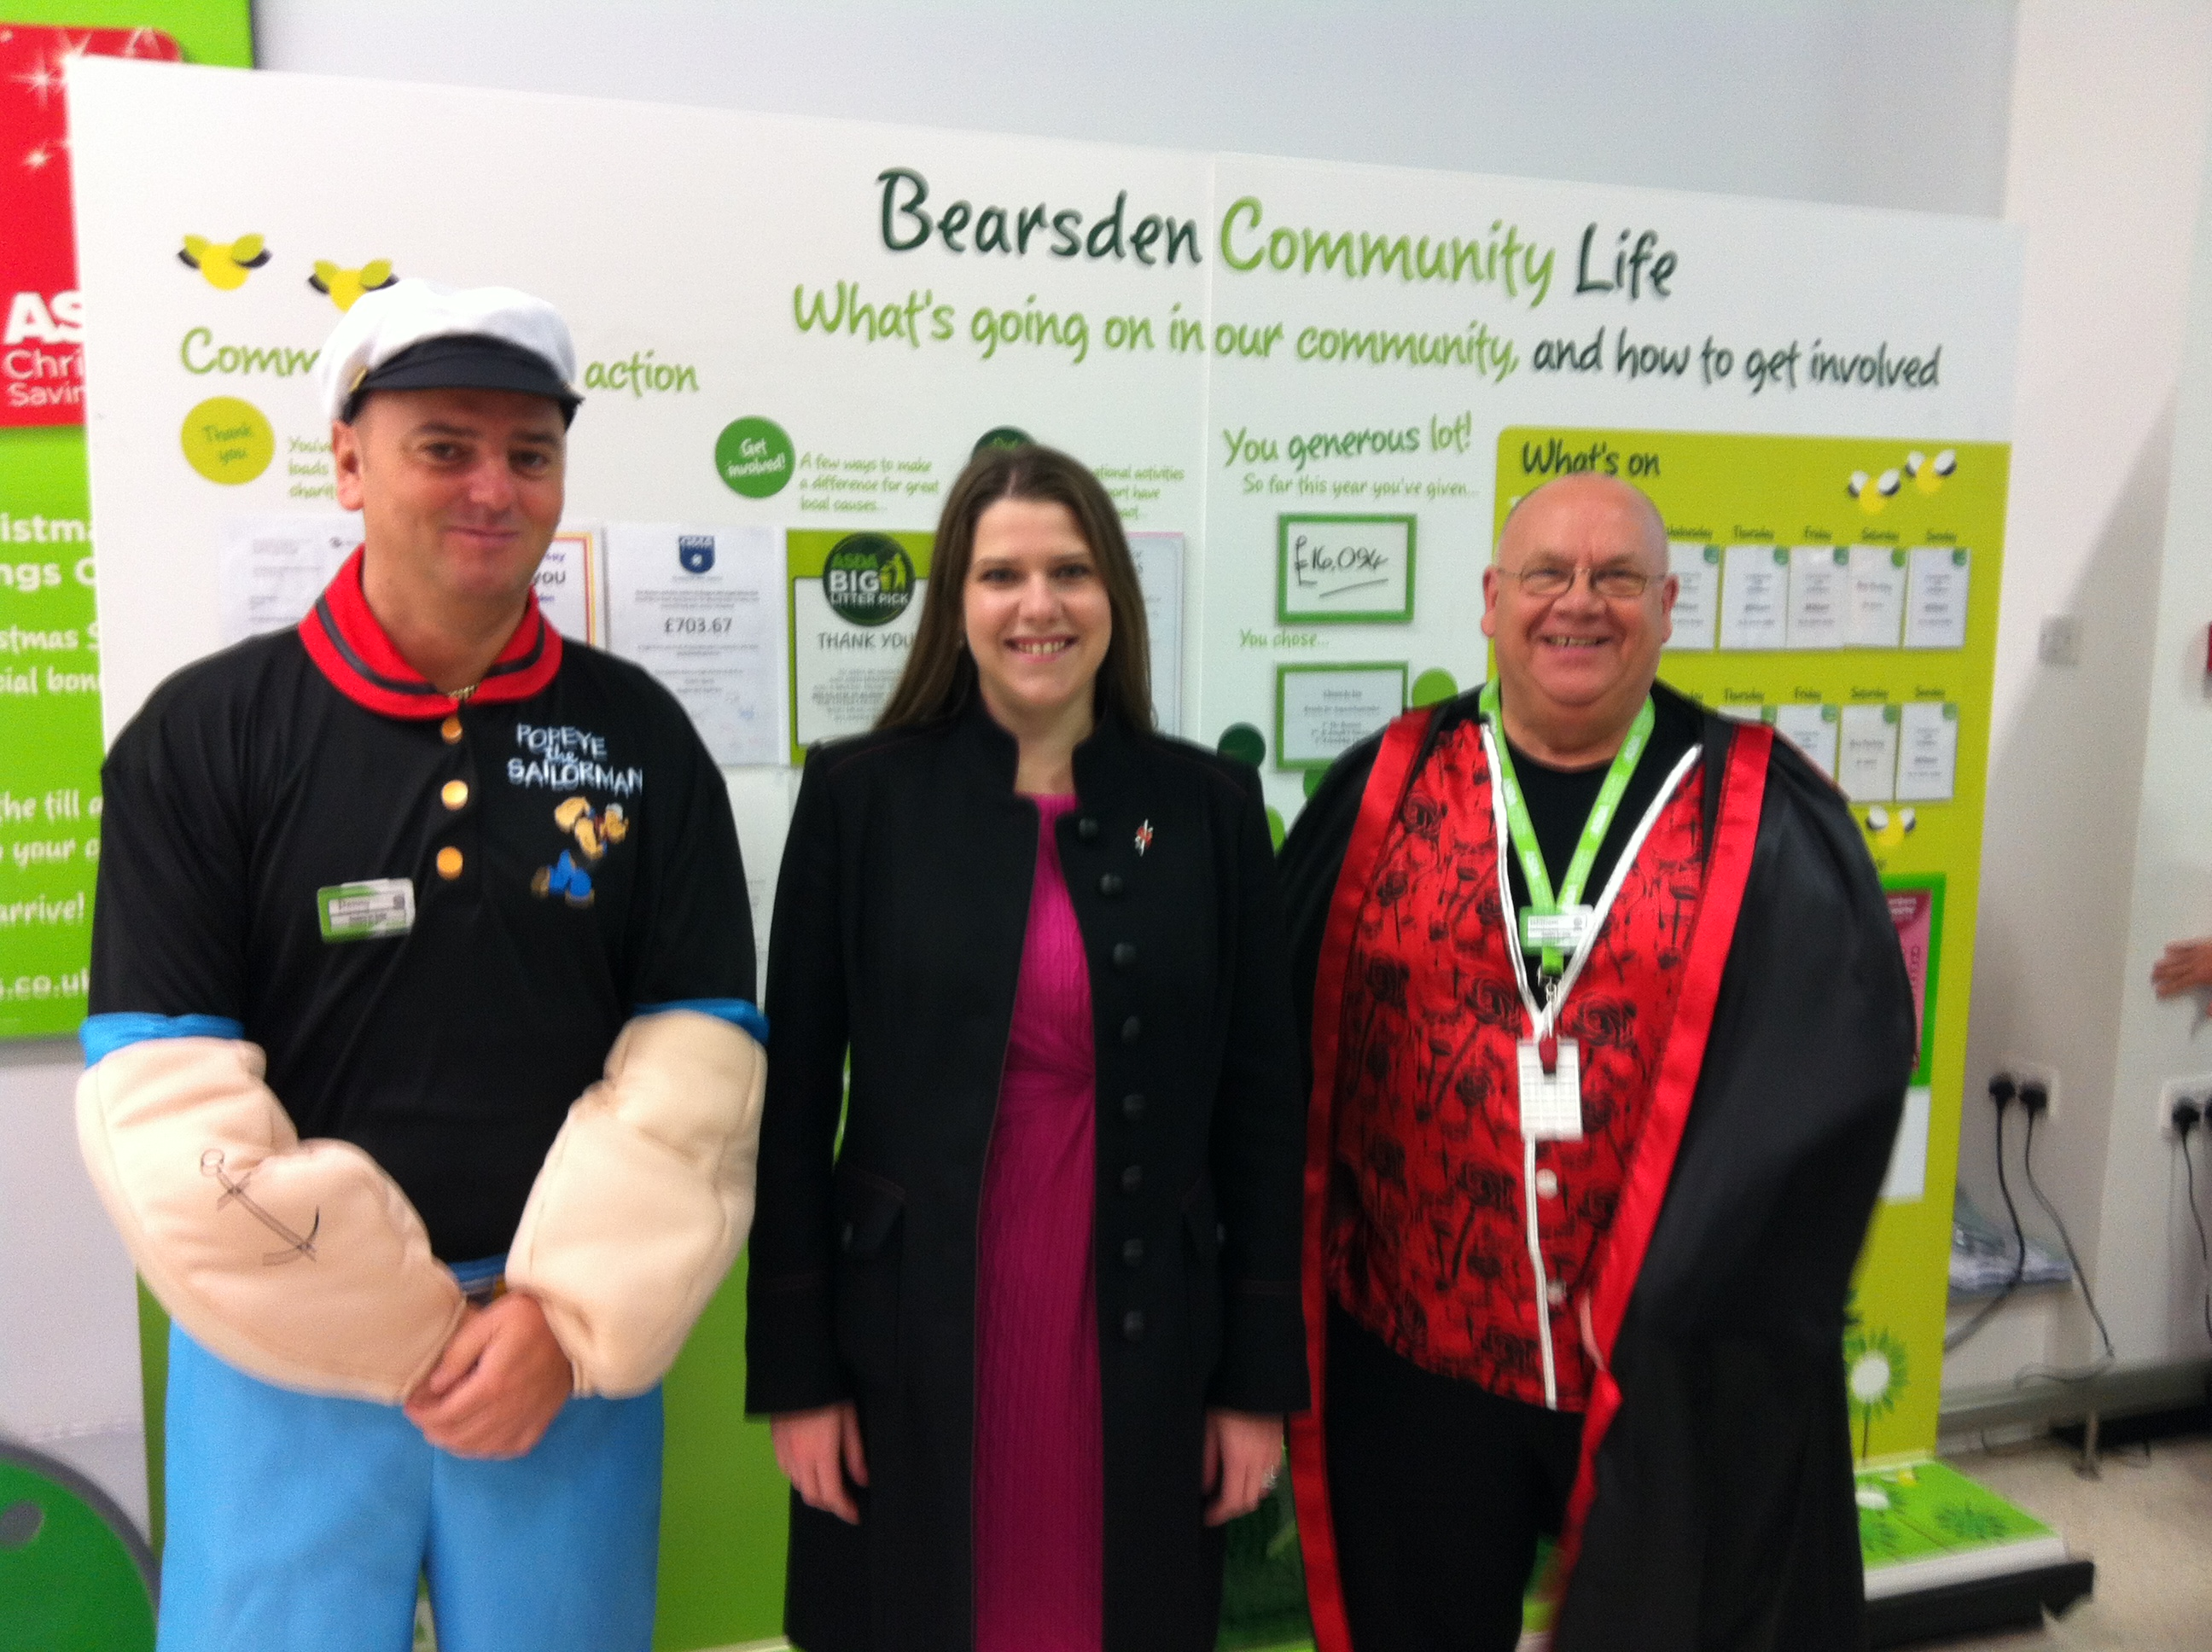 2012-10-26_ASDA_Bearsden_for_Tickled_Pink_Jo_Swinson_and_staff_in_Halloween_costumes.JPG